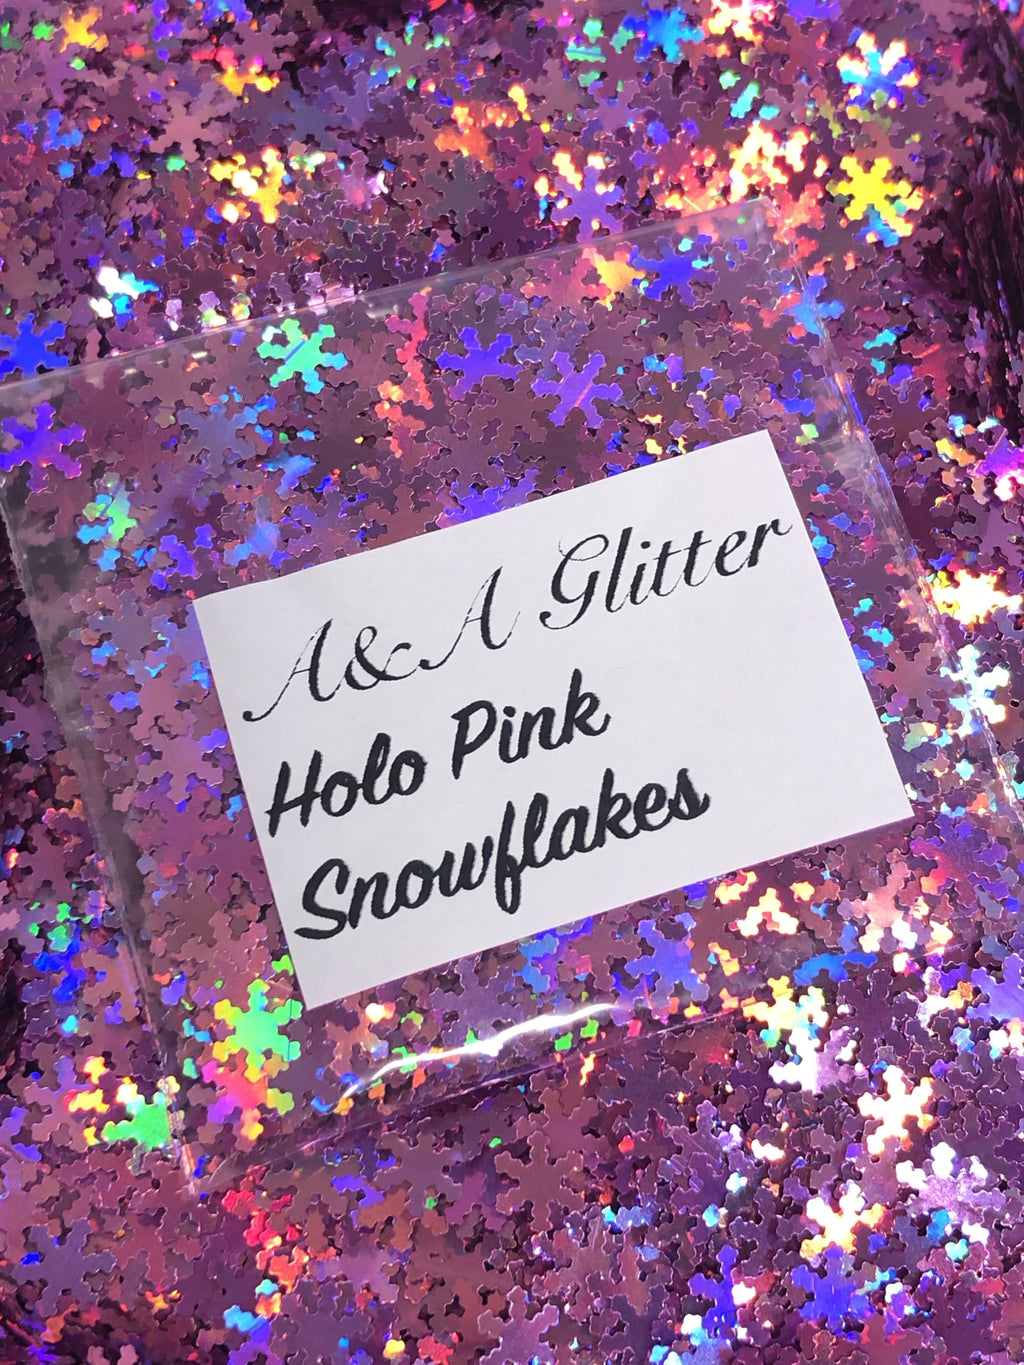 Holo Pink - Snowflakes